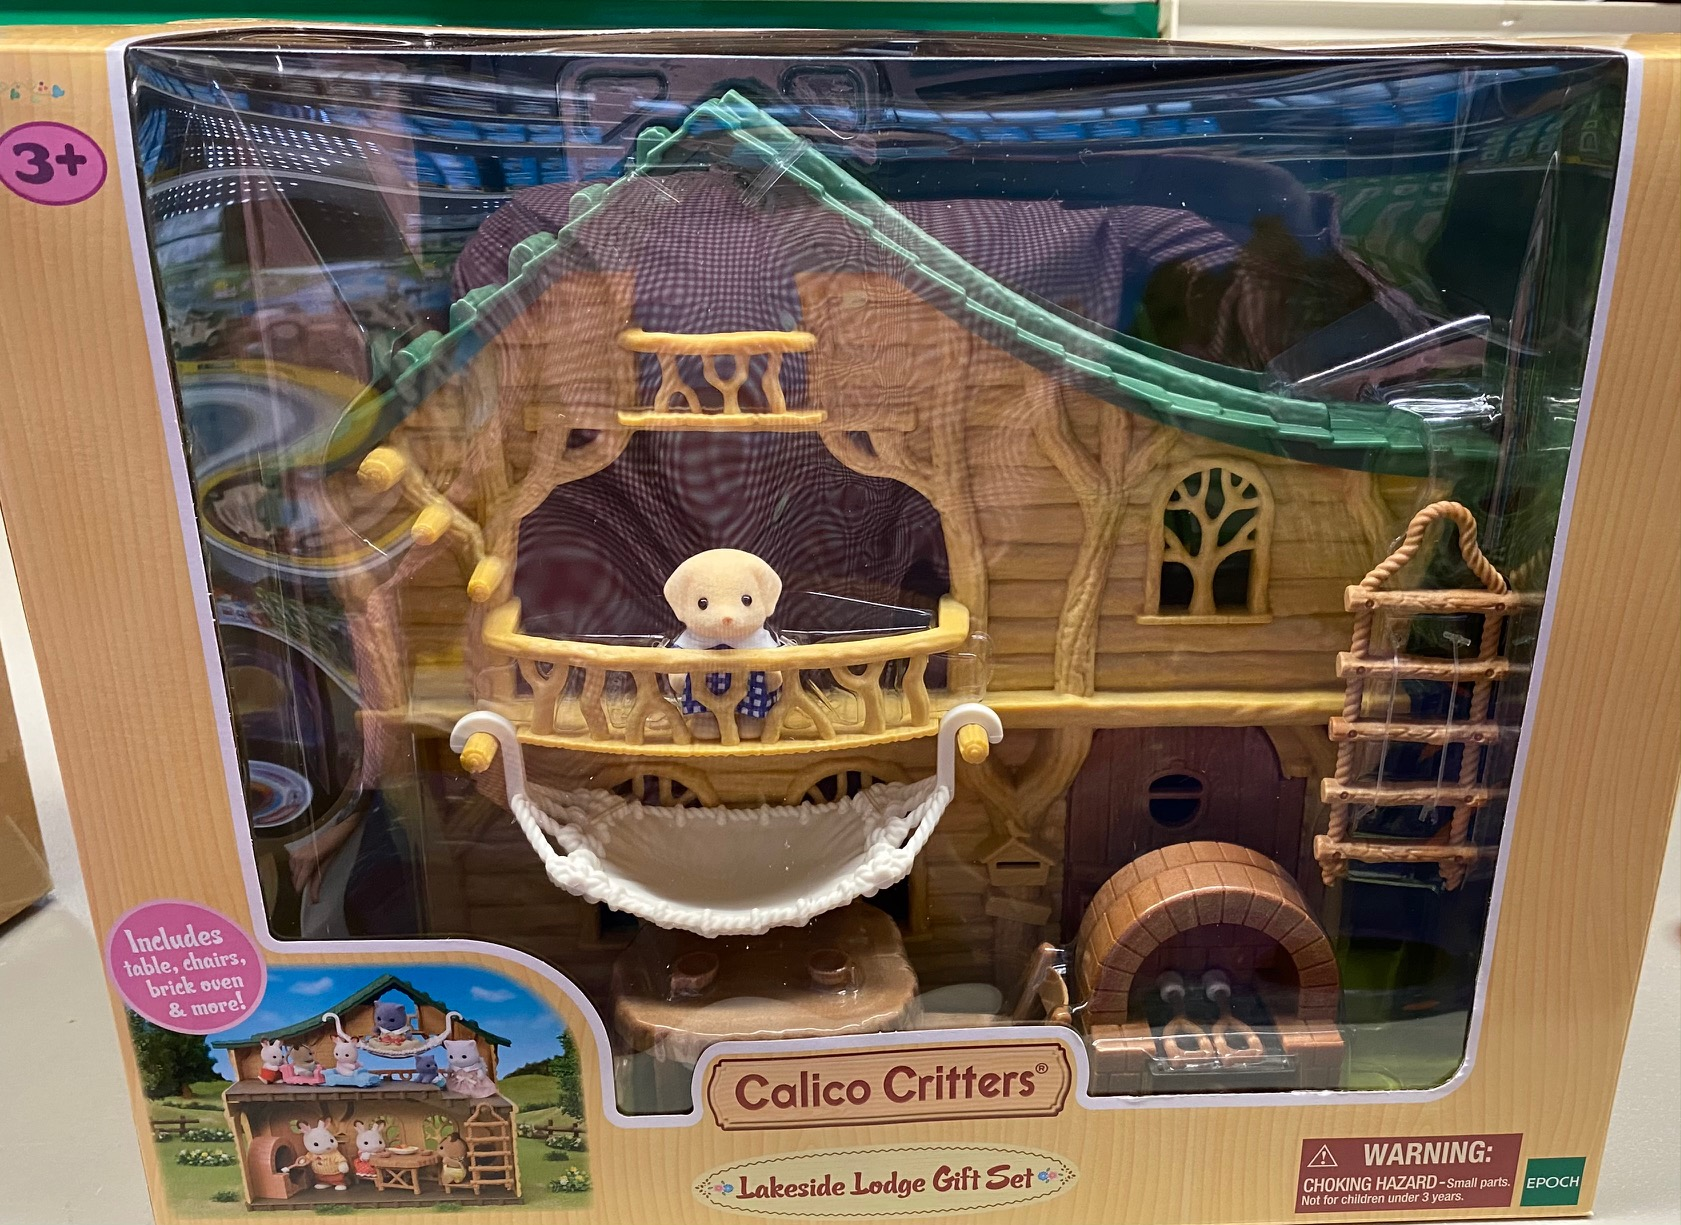 CALICO CRITTERS #1884 Lakeside Lodge Gift Set- New Factory Sealed!